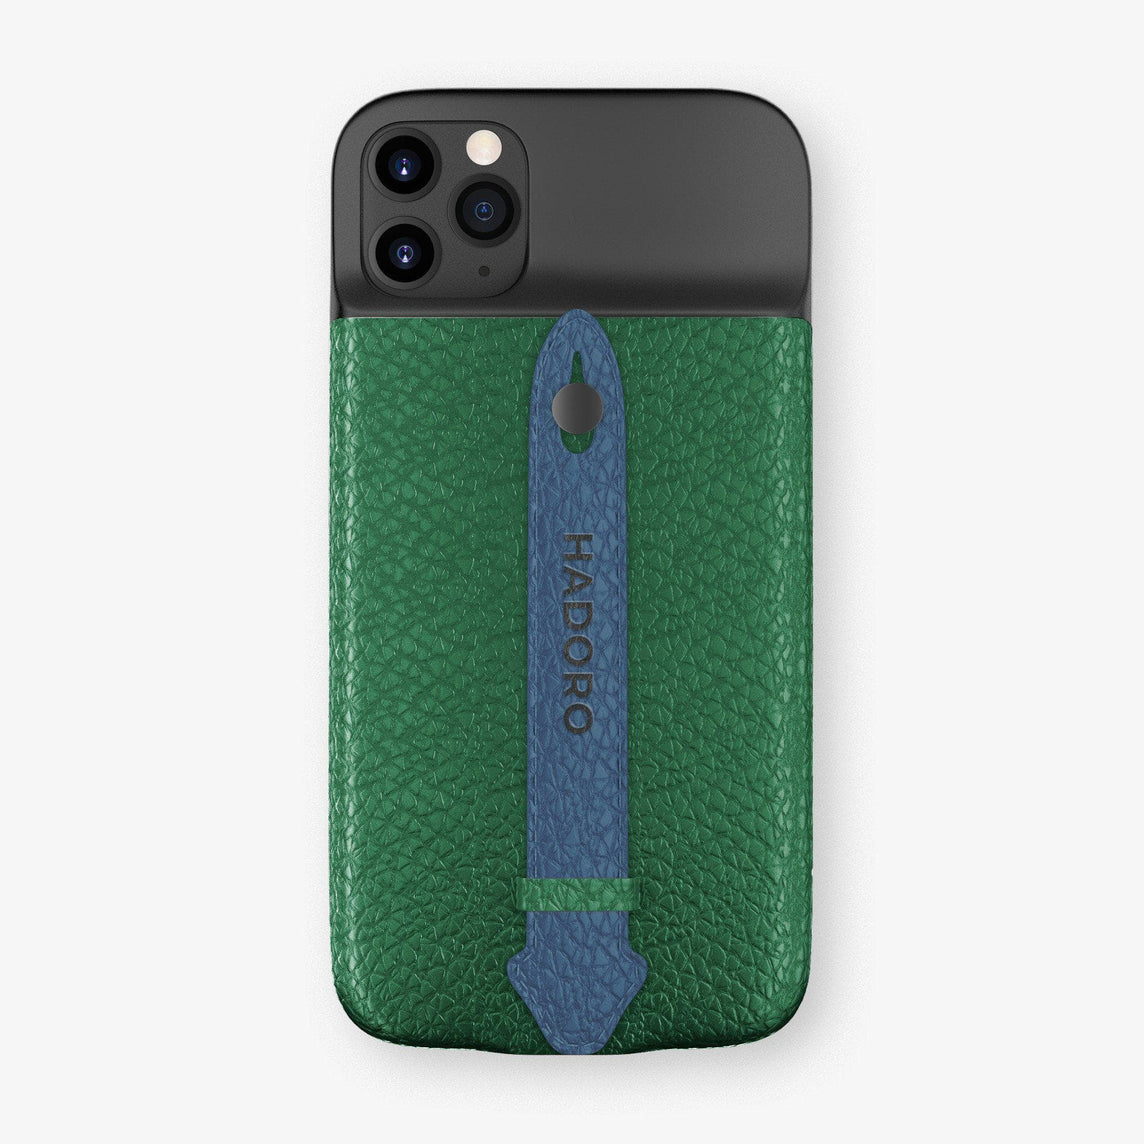 Calfskin Battery Finger Case for iPhone 11 Pro Max | Green/Teal - Black without-personalization